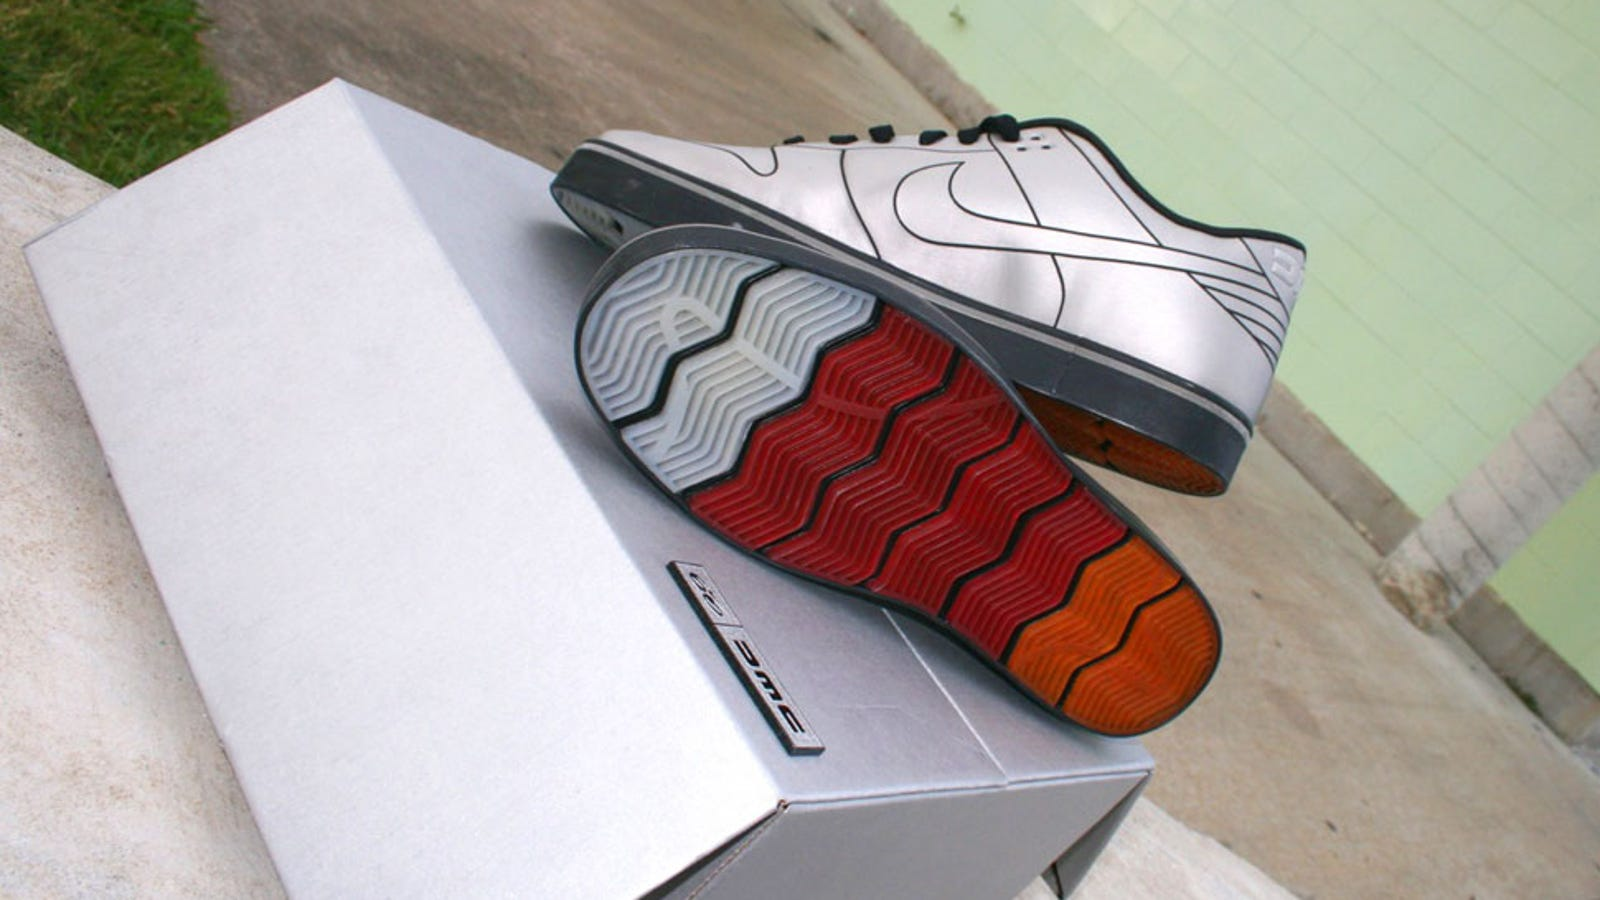 best sneakers 4a11b 02113 2010 DeLorean Nike Dunk 6.0  First Sprint